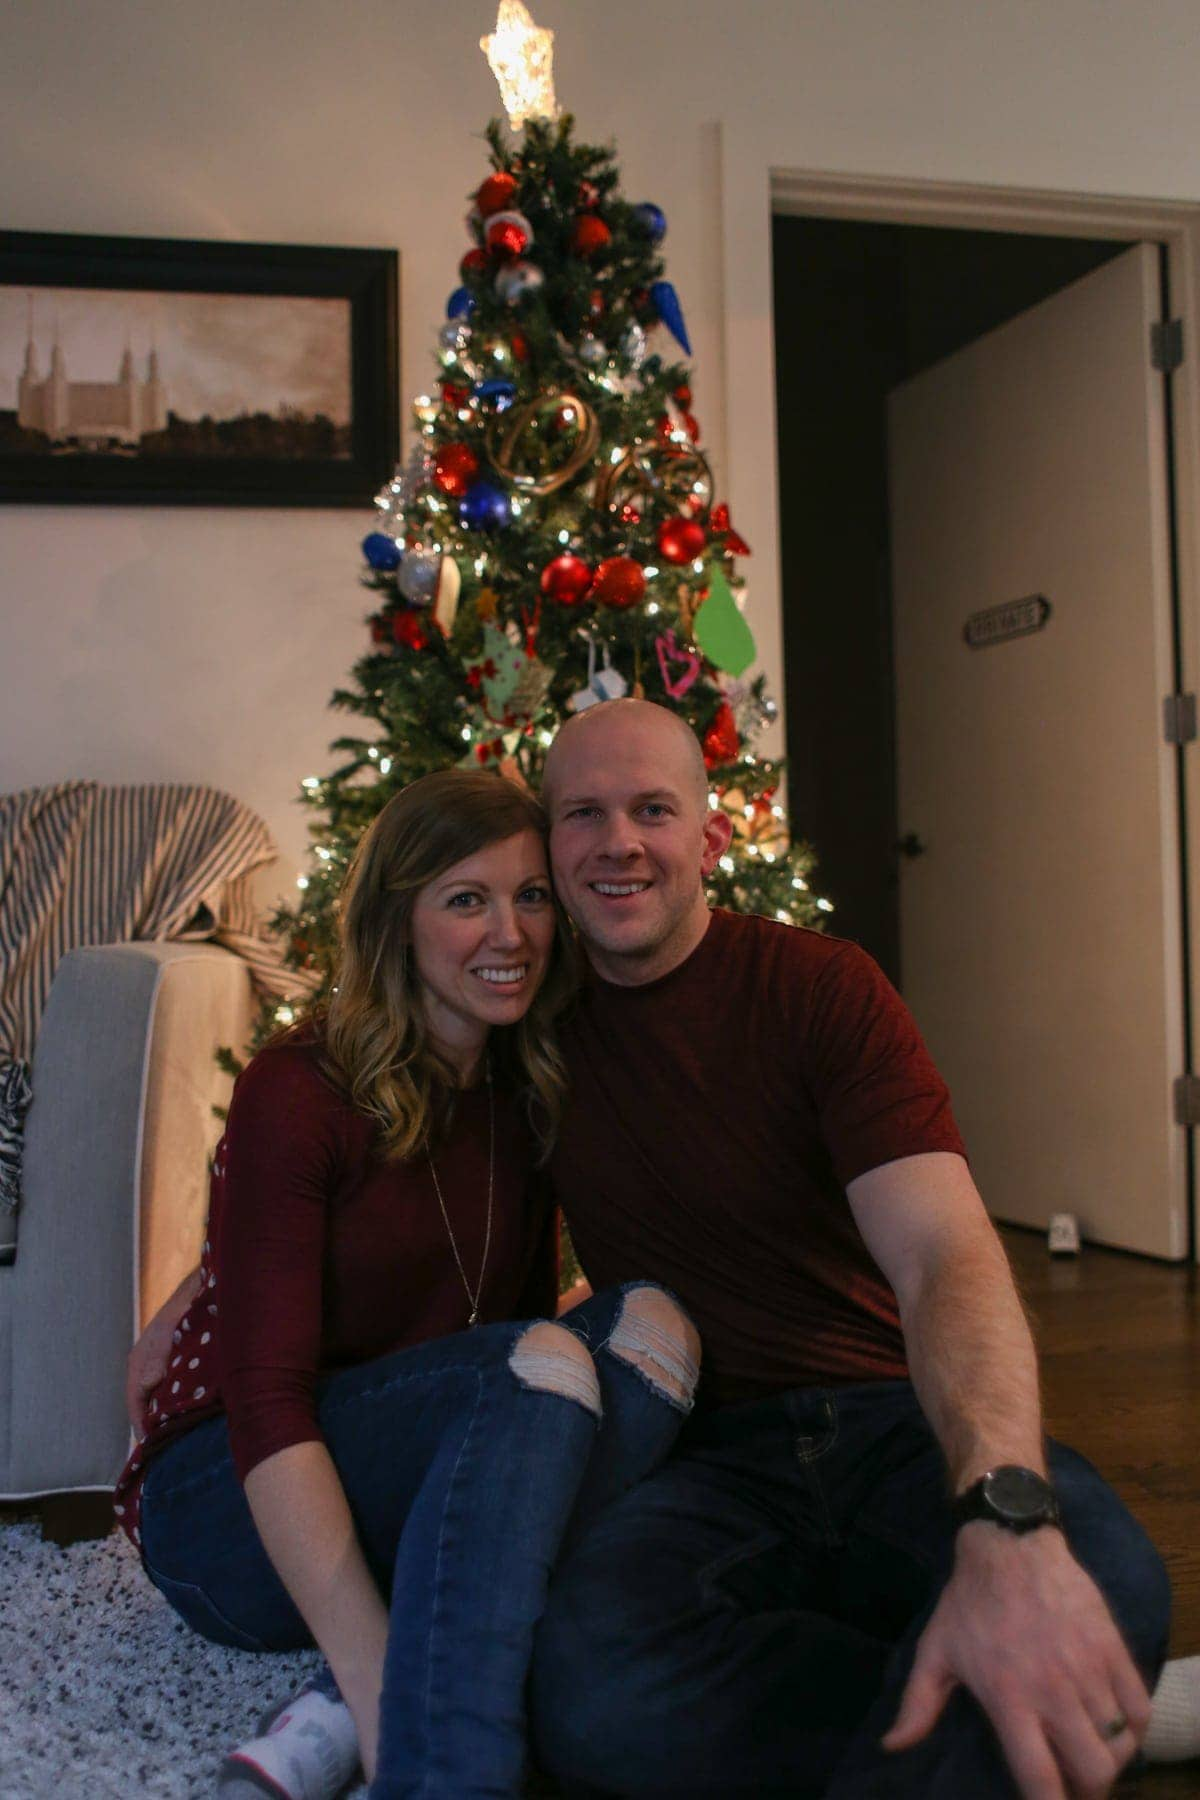 Lauren and Gordon in front of the Christmas tree